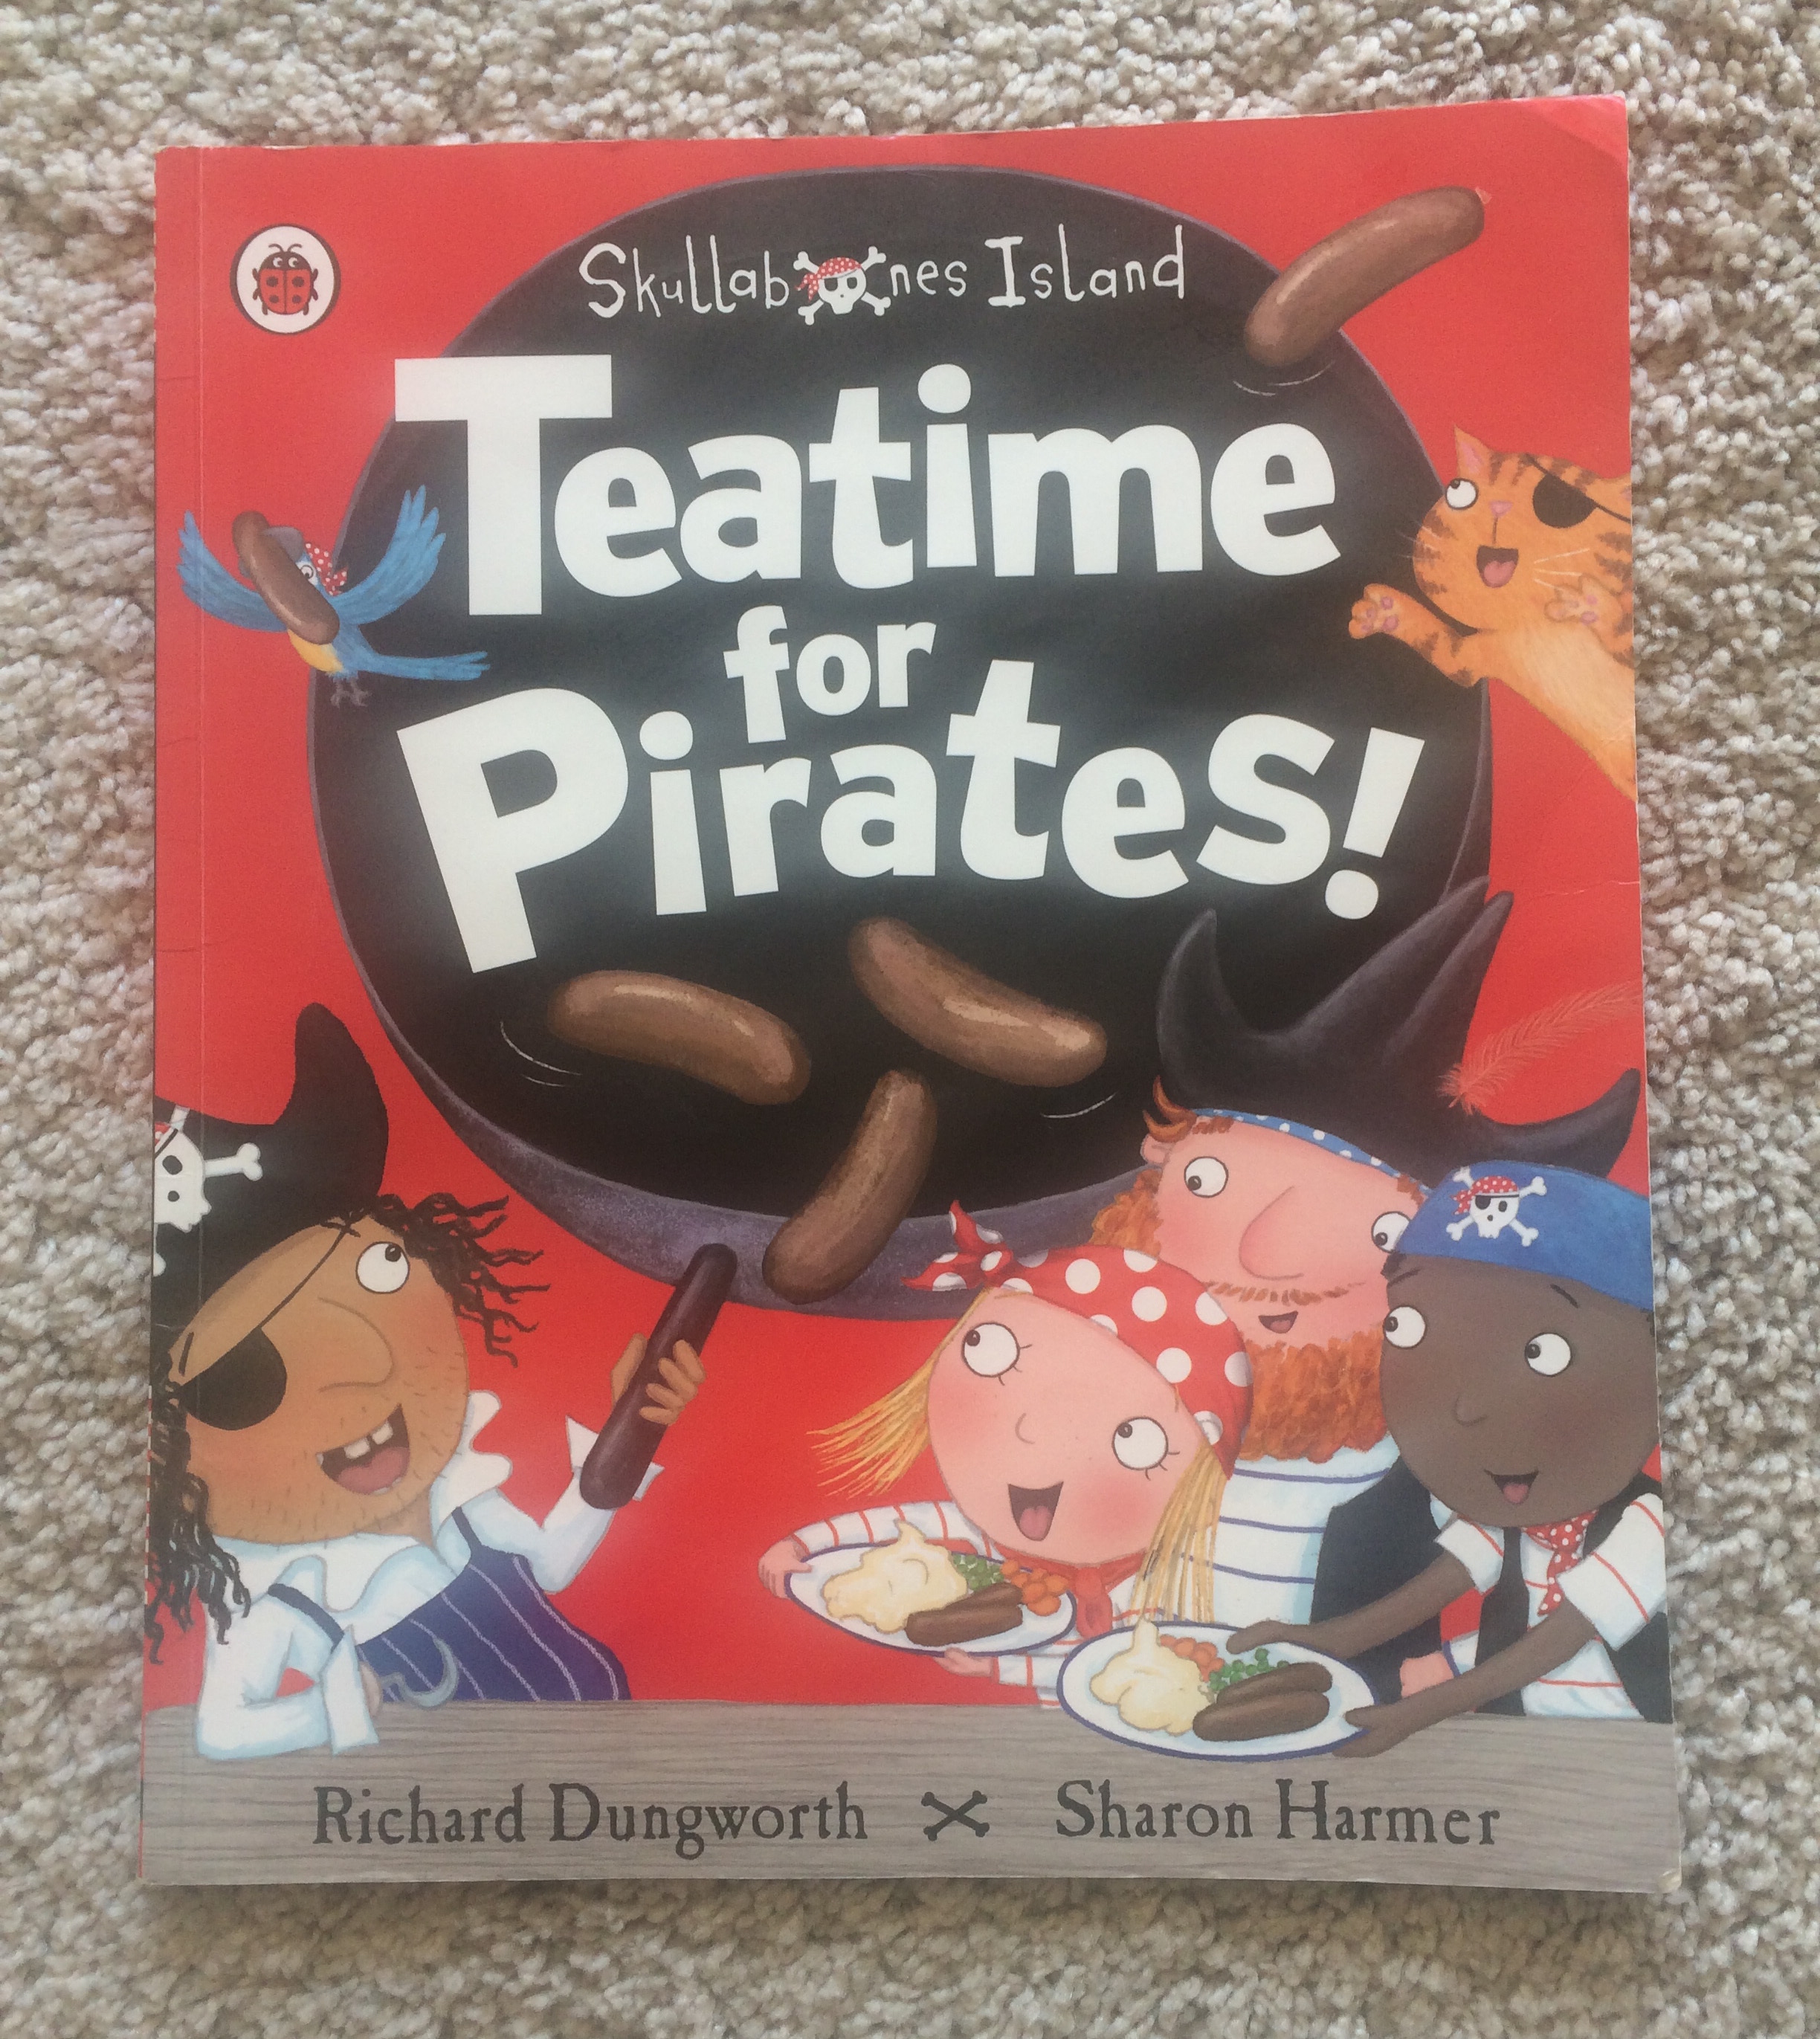 Teatime for Pirates by Richard Dungworth and Sharon Harmer